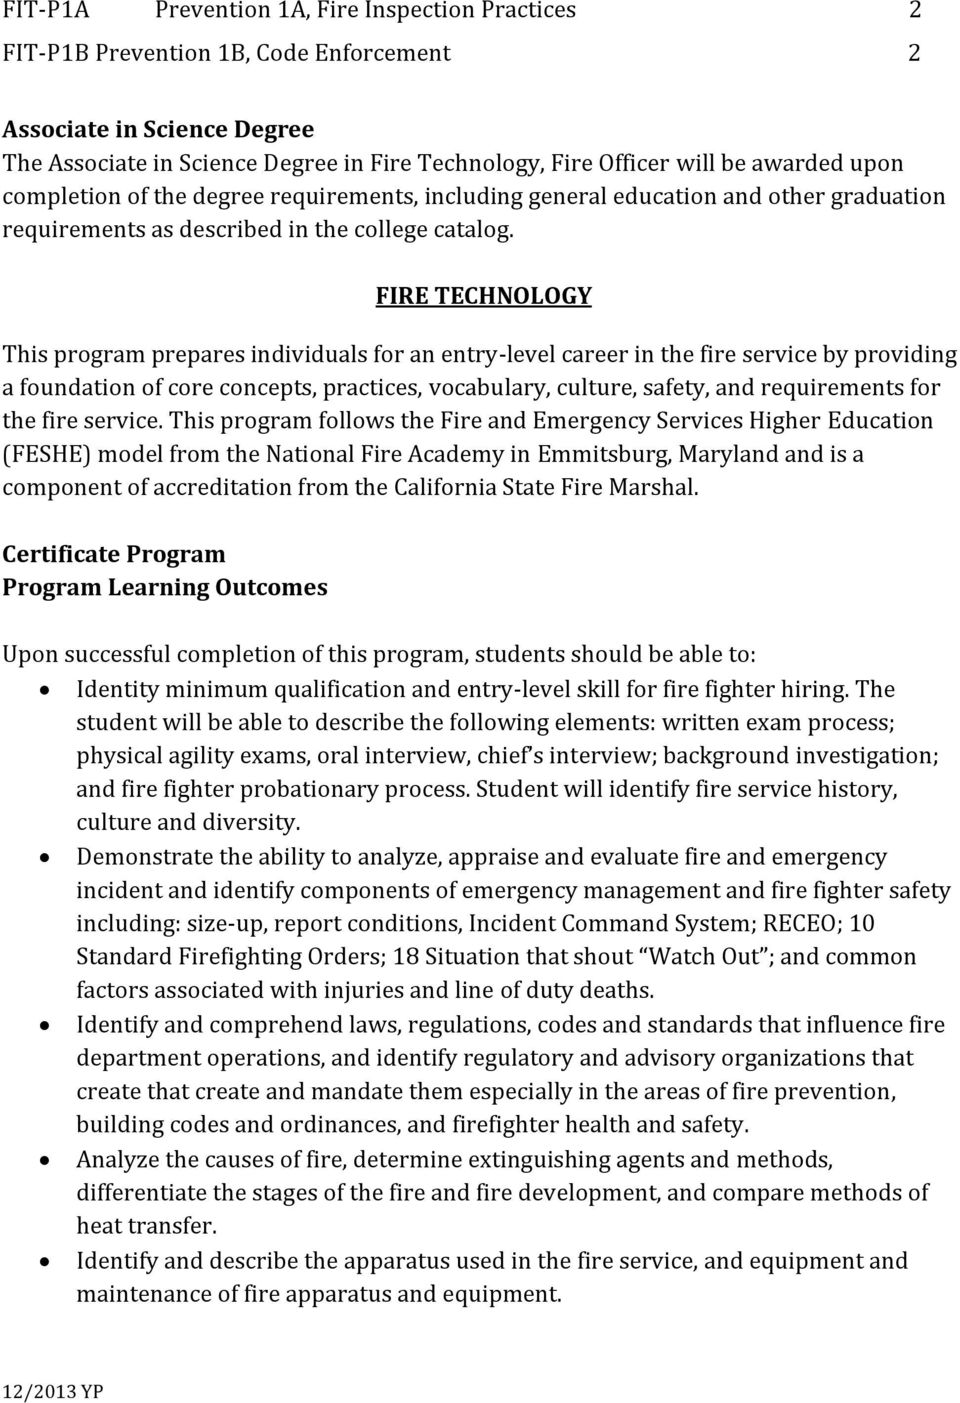 FIRE TECHNOLOGY This program prepares individuals for an entry-level career in the fire service by providing a foundation of core concepts, practices, vocabulary, culture, safety, and requirements